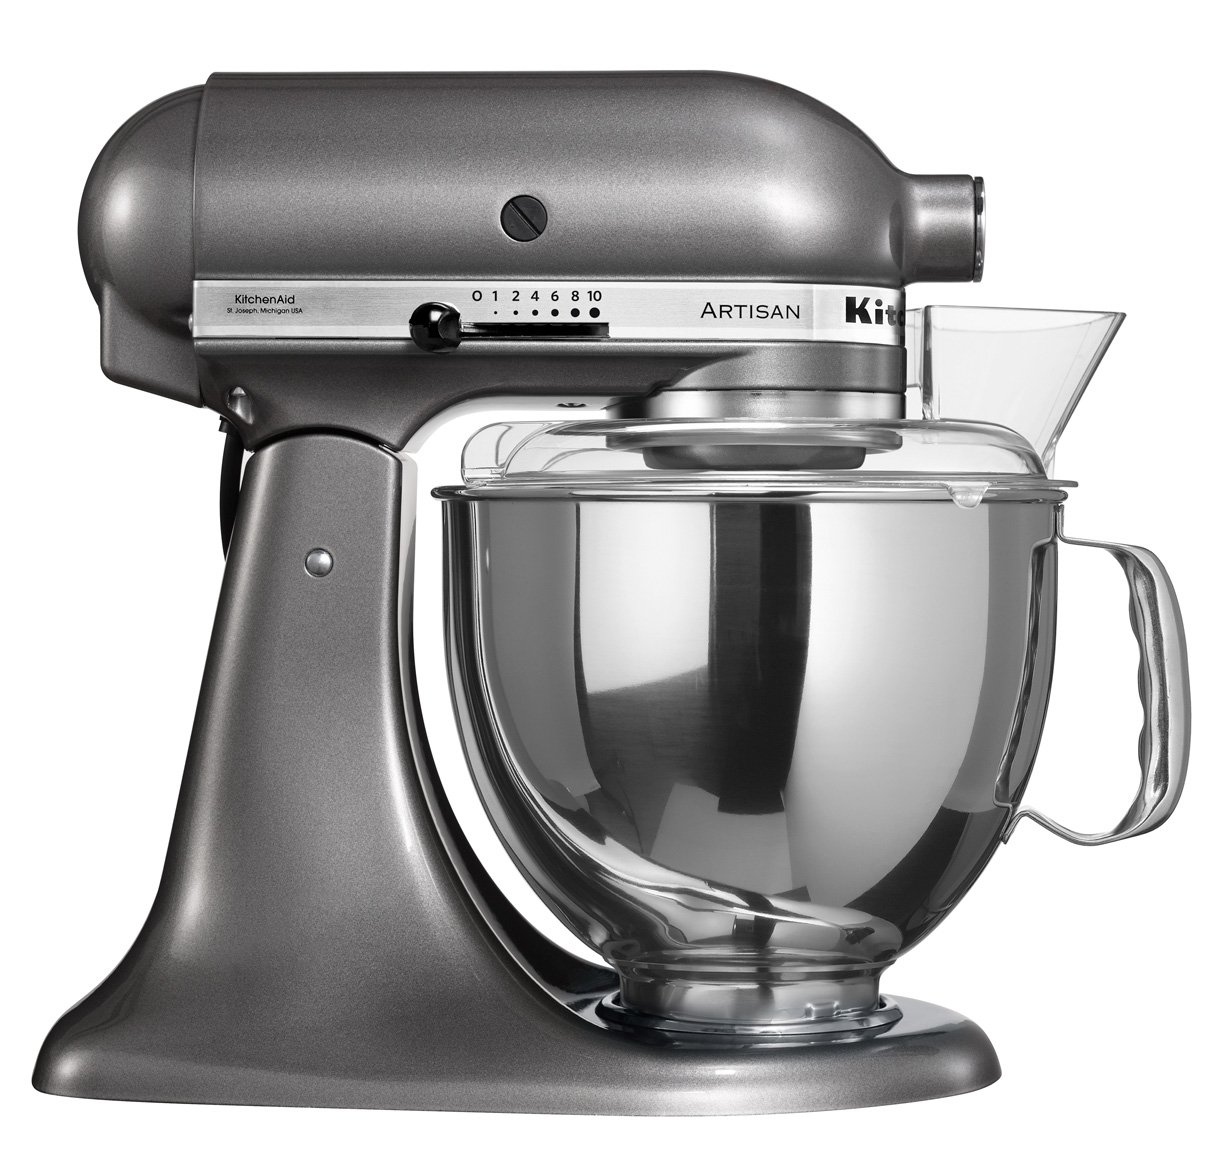 Amazon.de: KitchenAid 5KSM150PSEGR Küchenmaschine Serie \